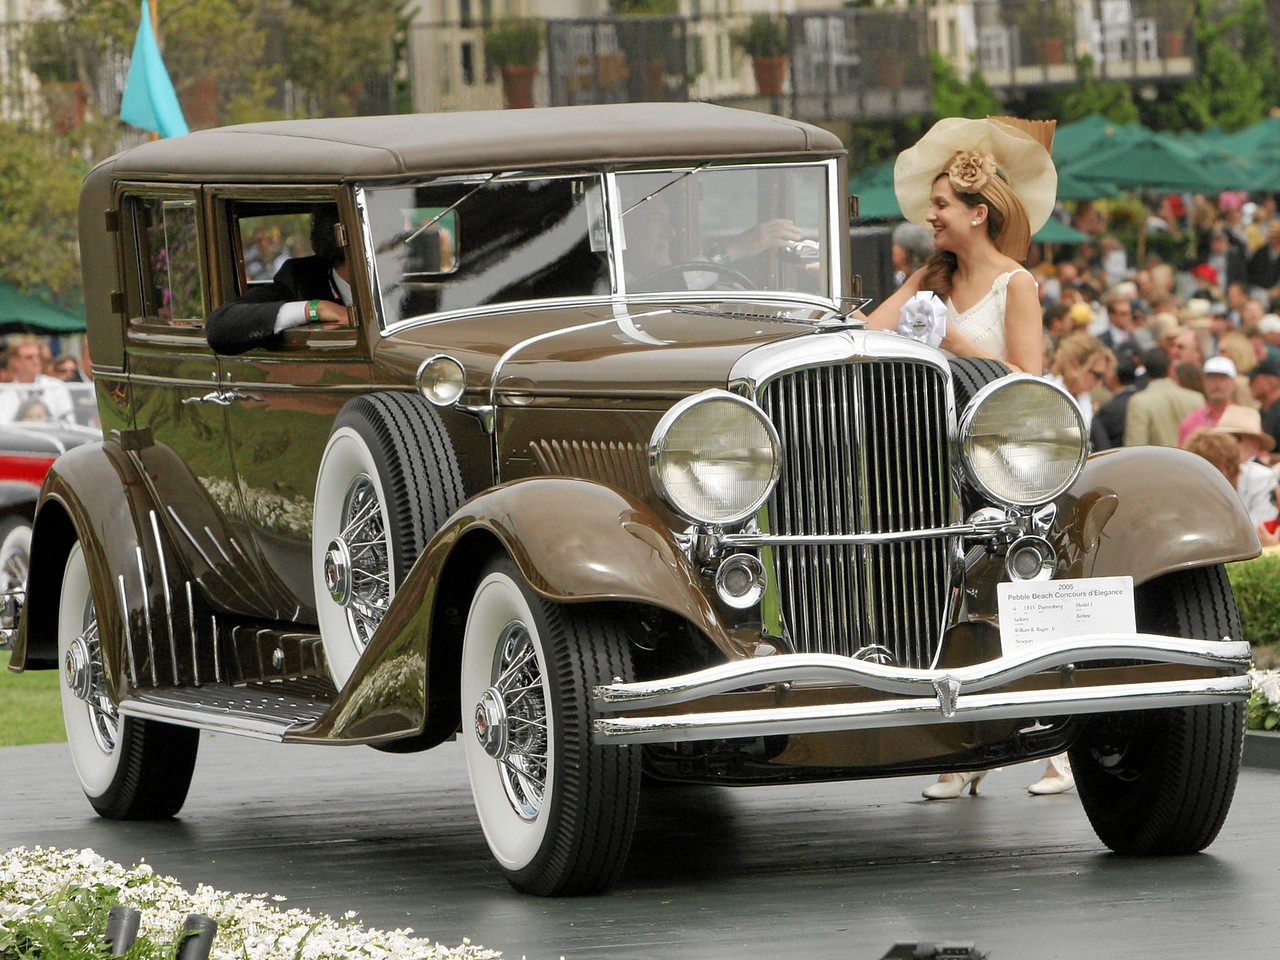 1935 Duesenberg Model J Judkins Berline owned by William B. Ruger, Jr. from Newport, New Hampshire 3rd Class G (Duesenberg)